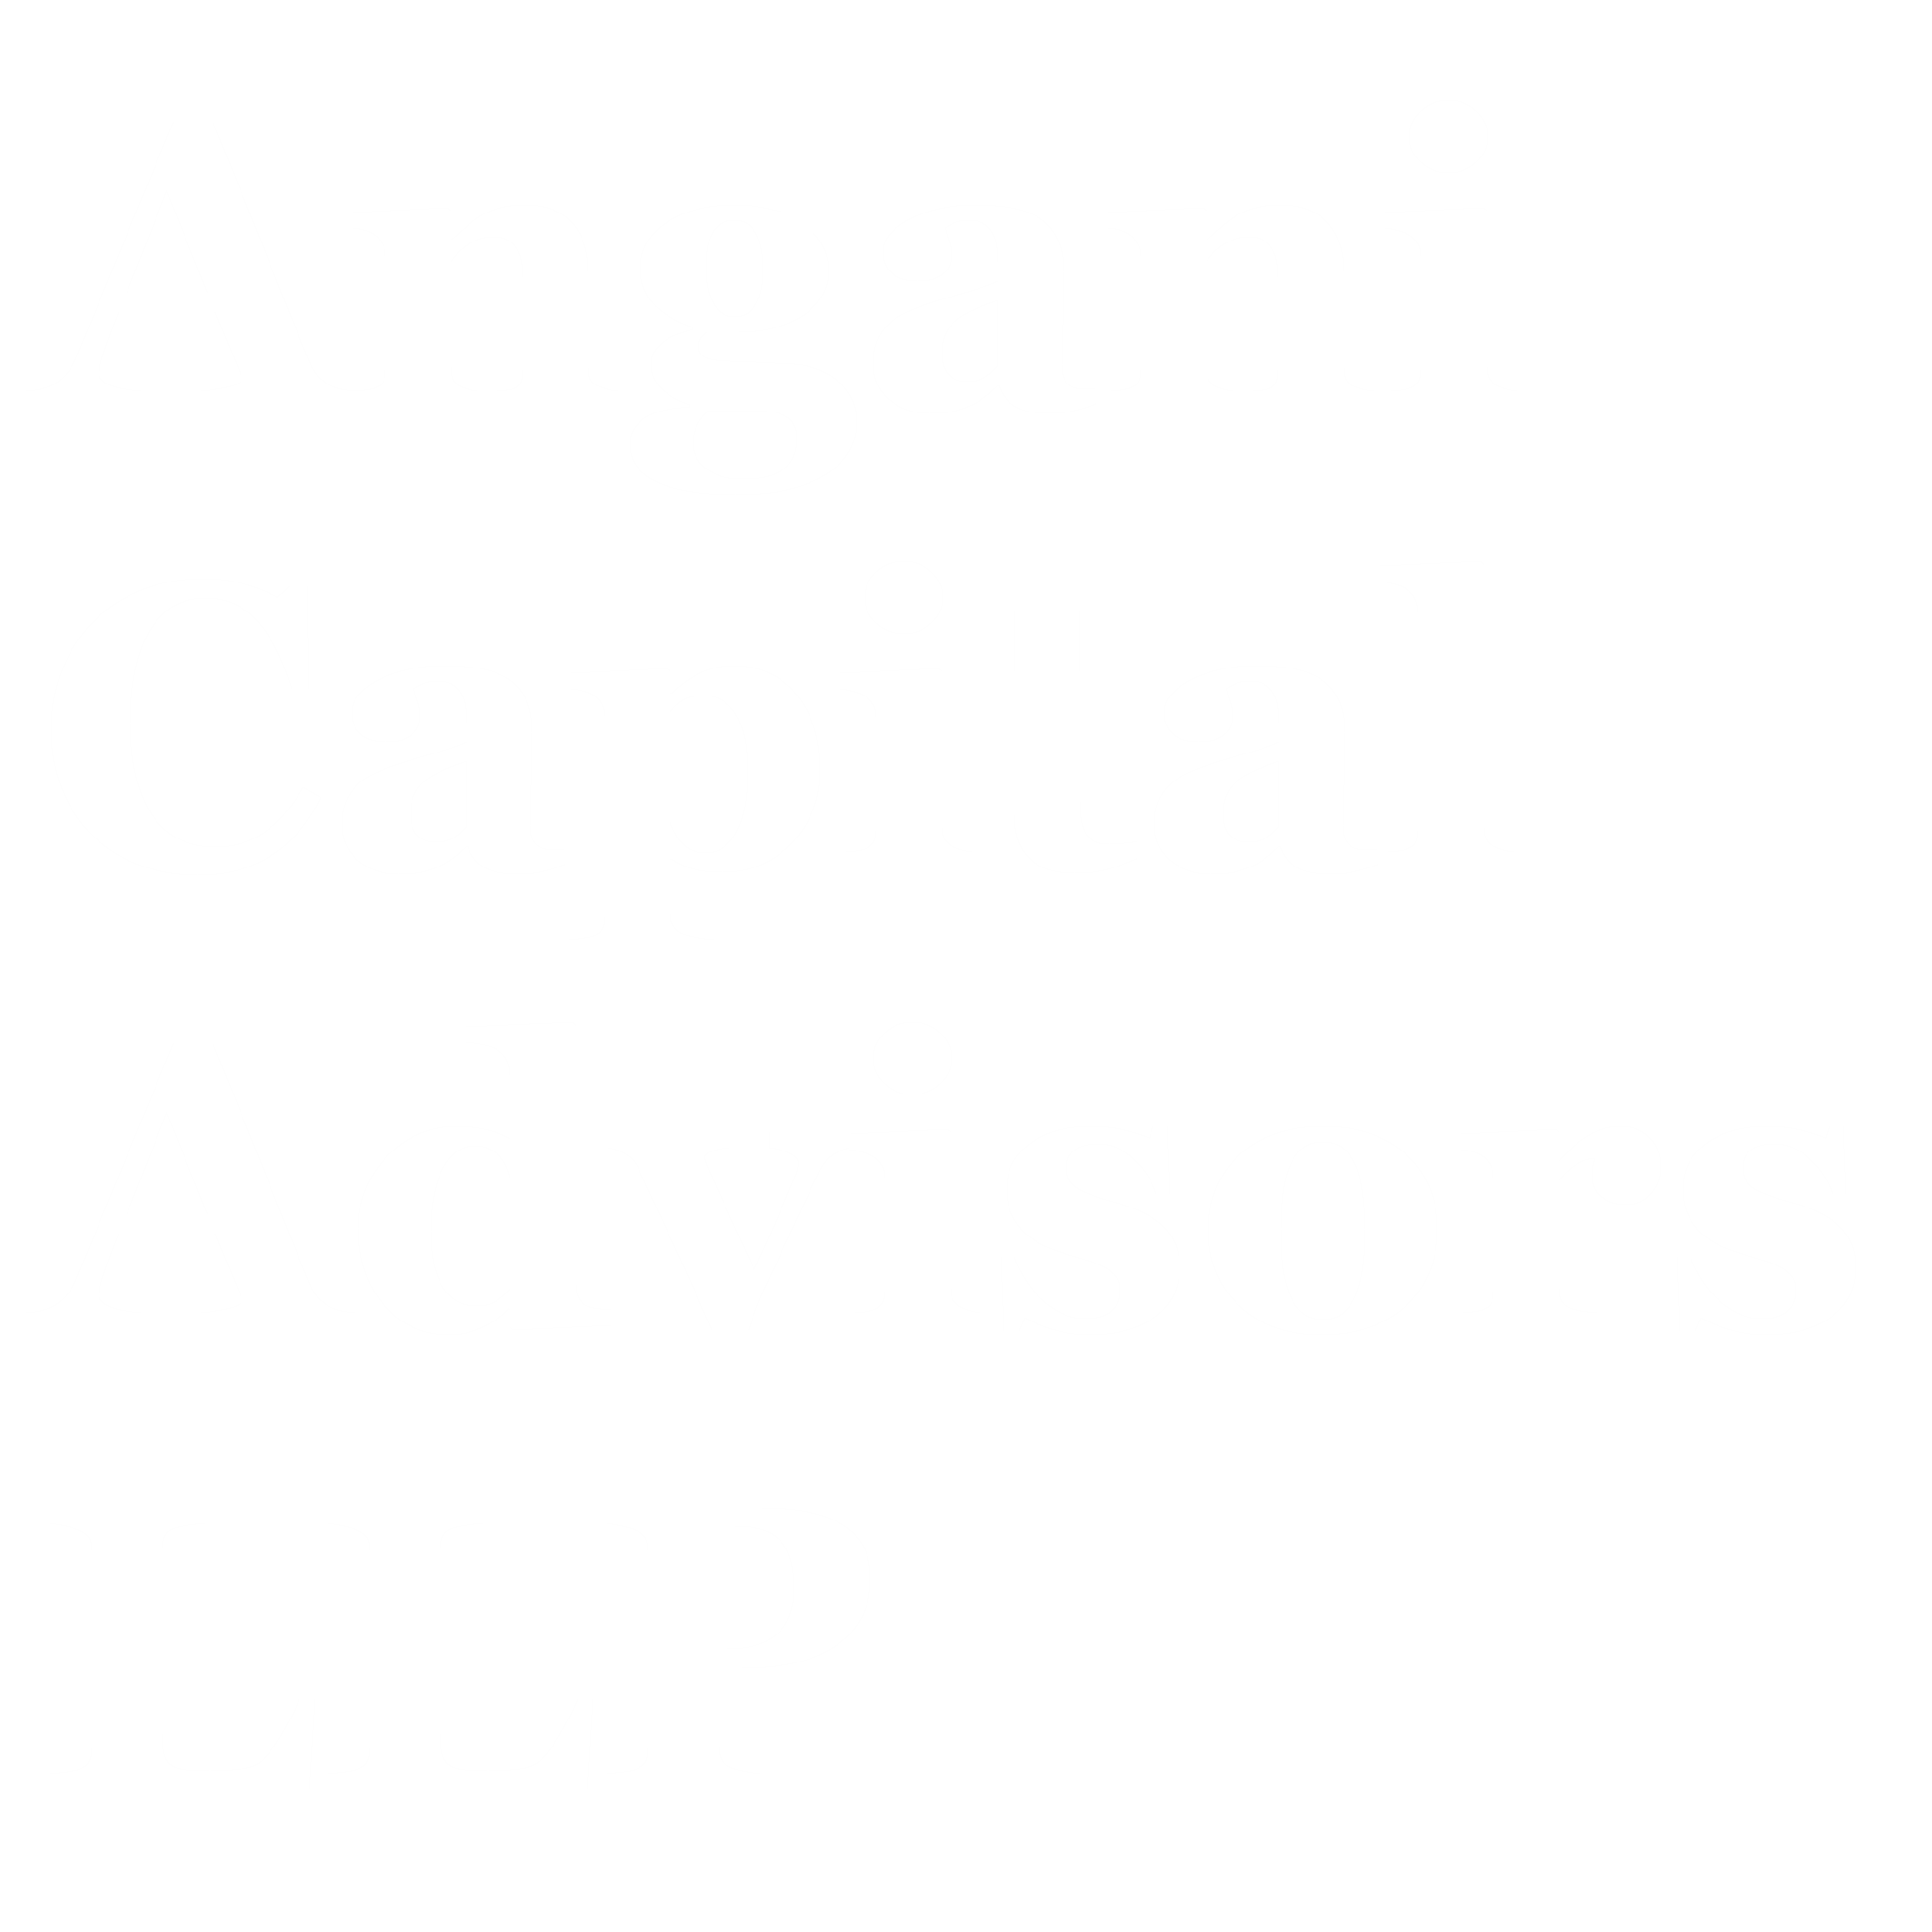 AnganiCap : Algorithmic Trading & Investing Technology